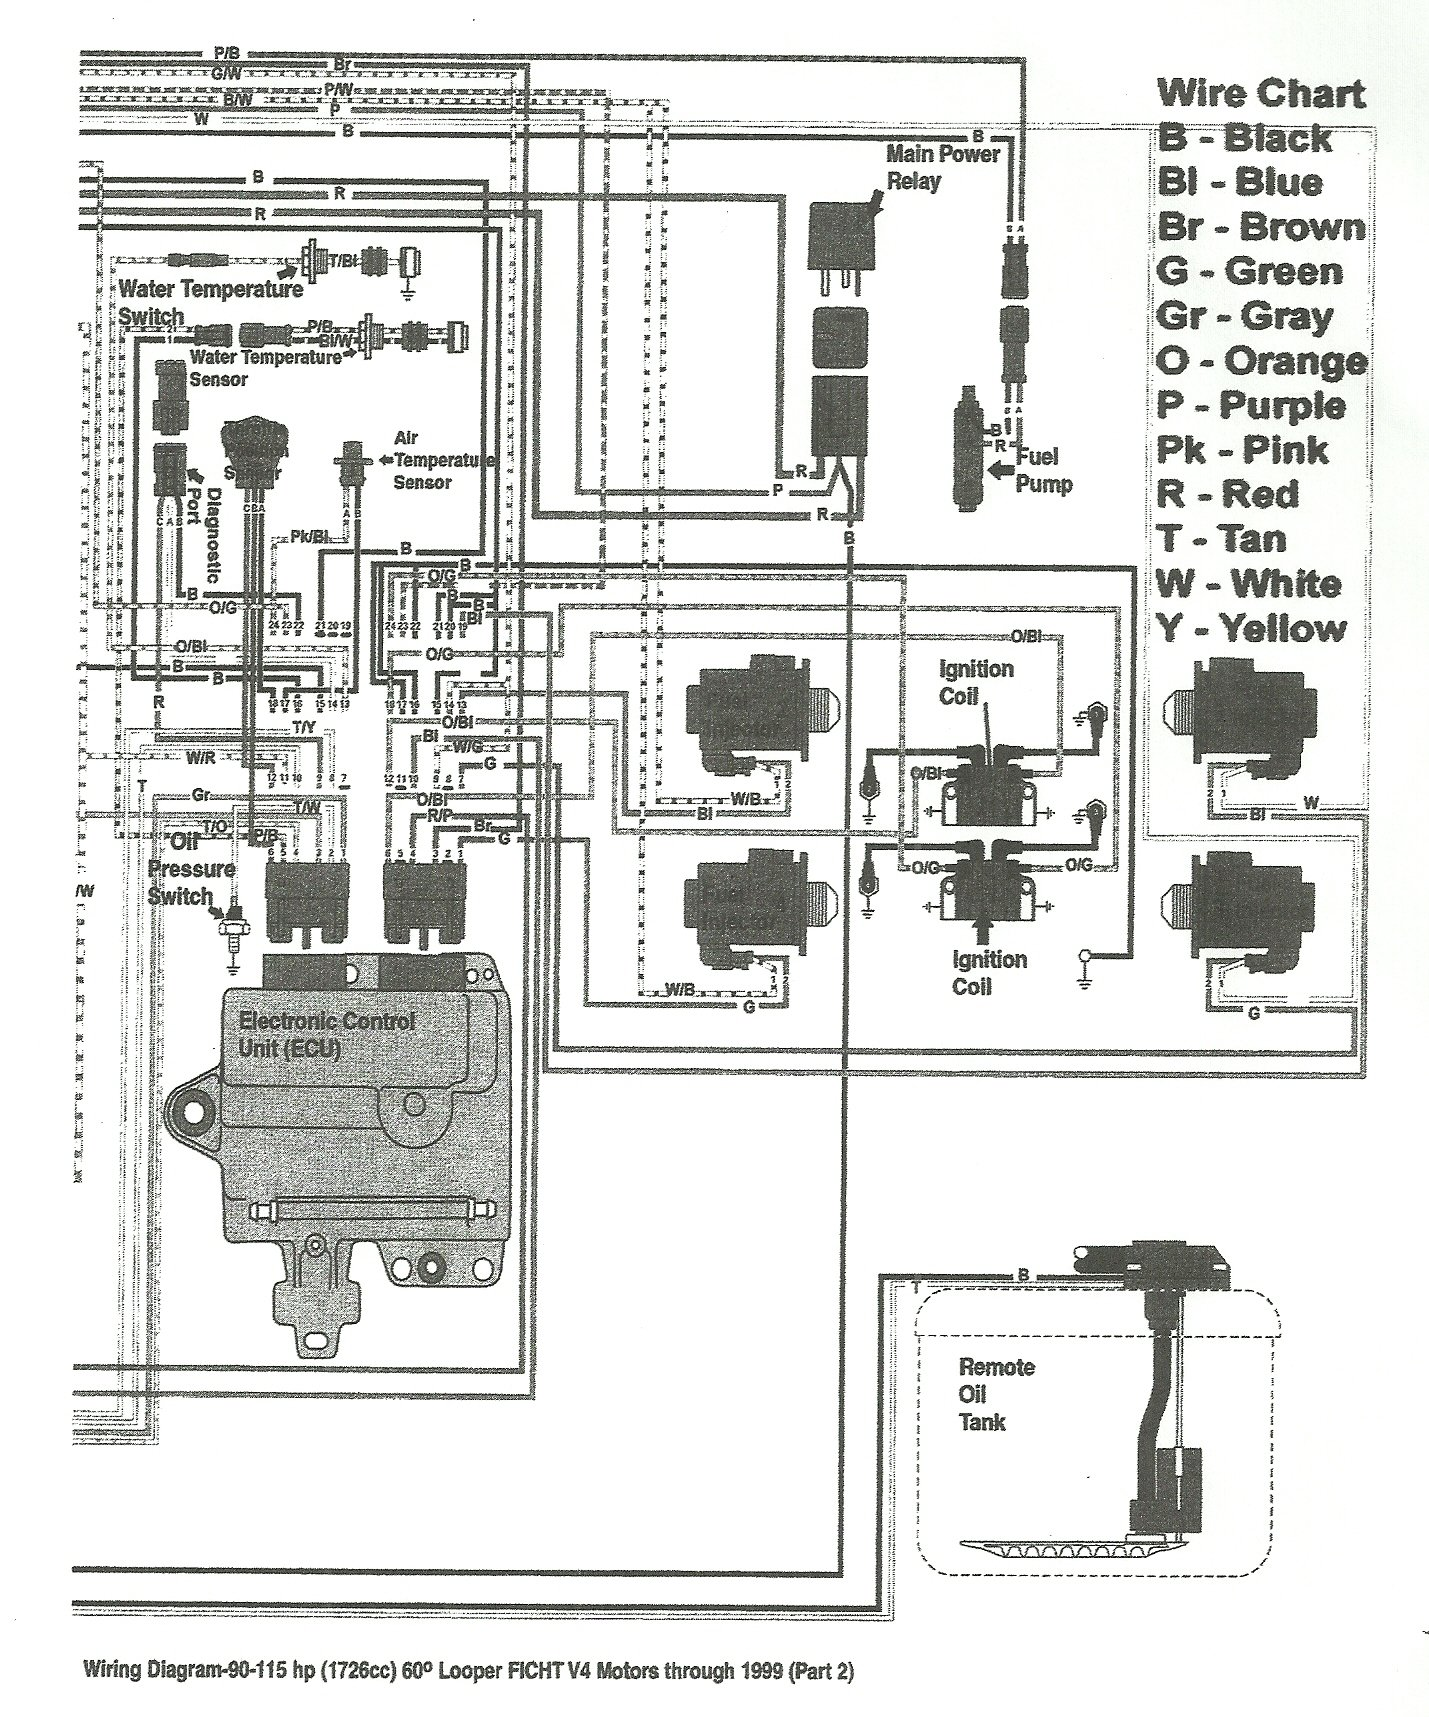 Wiring Diagram For Evinrude 225 Ficht